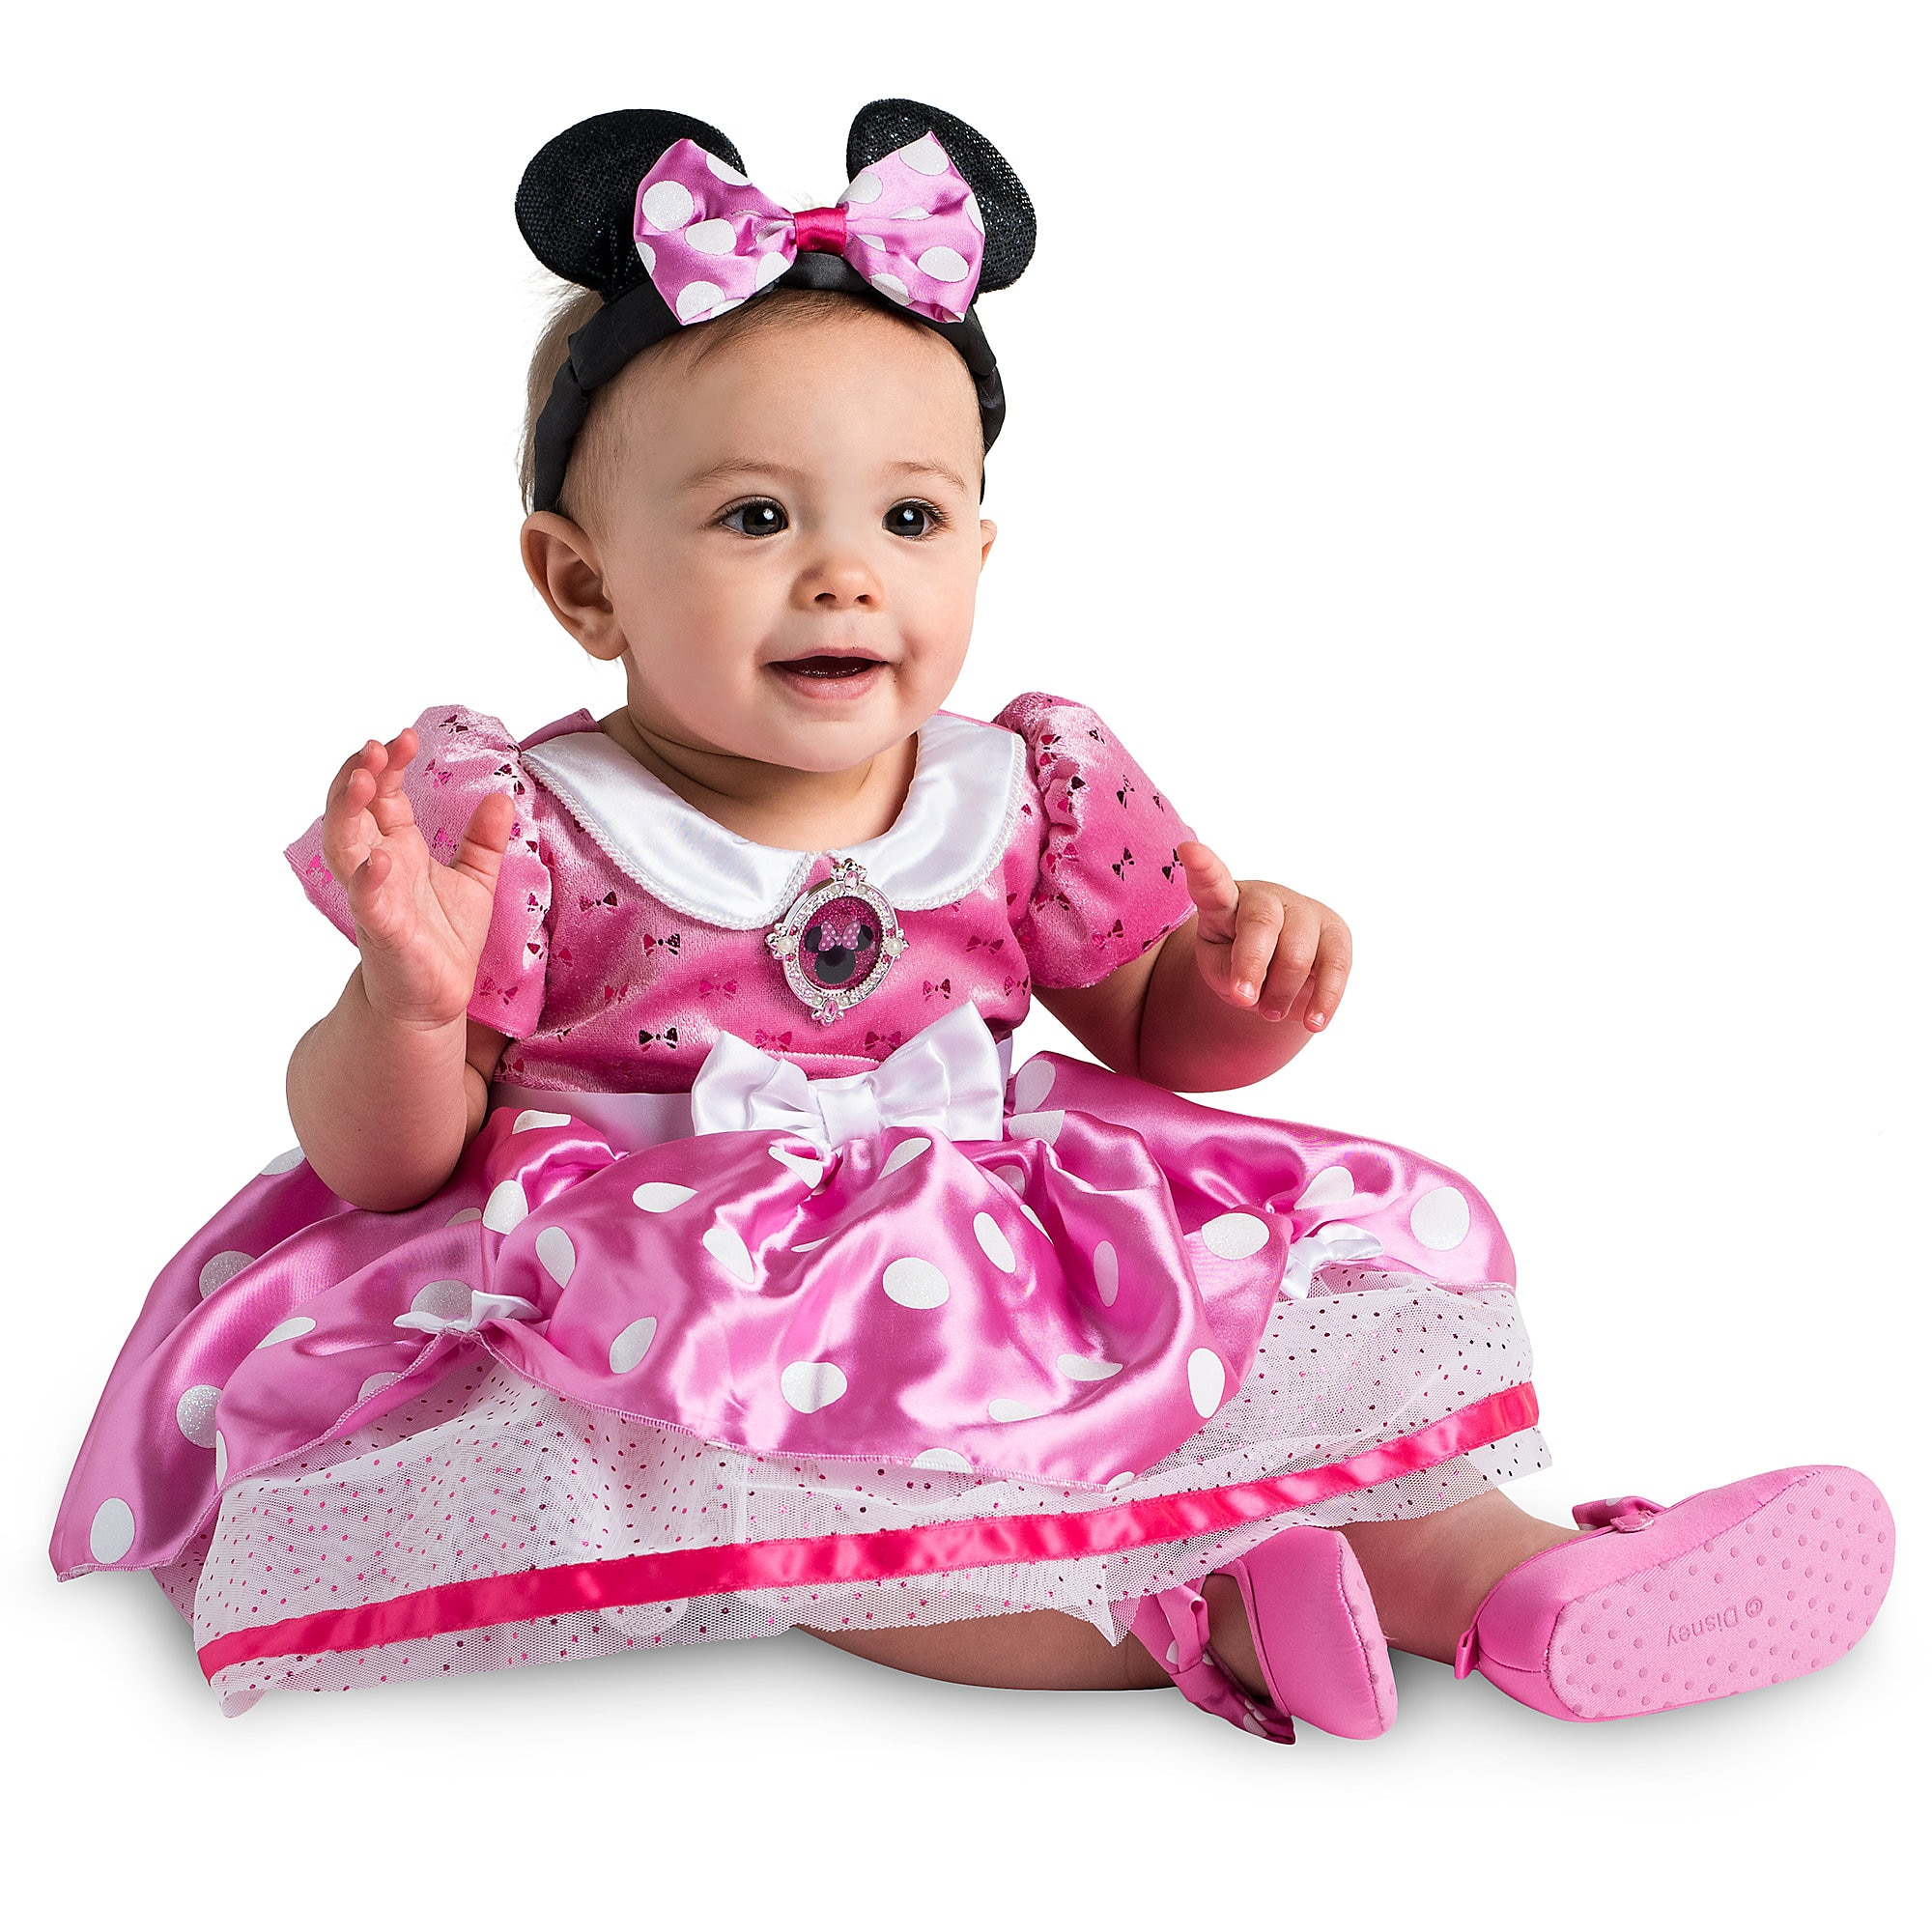 Minnie Mouse Costume for Baby shopDisney